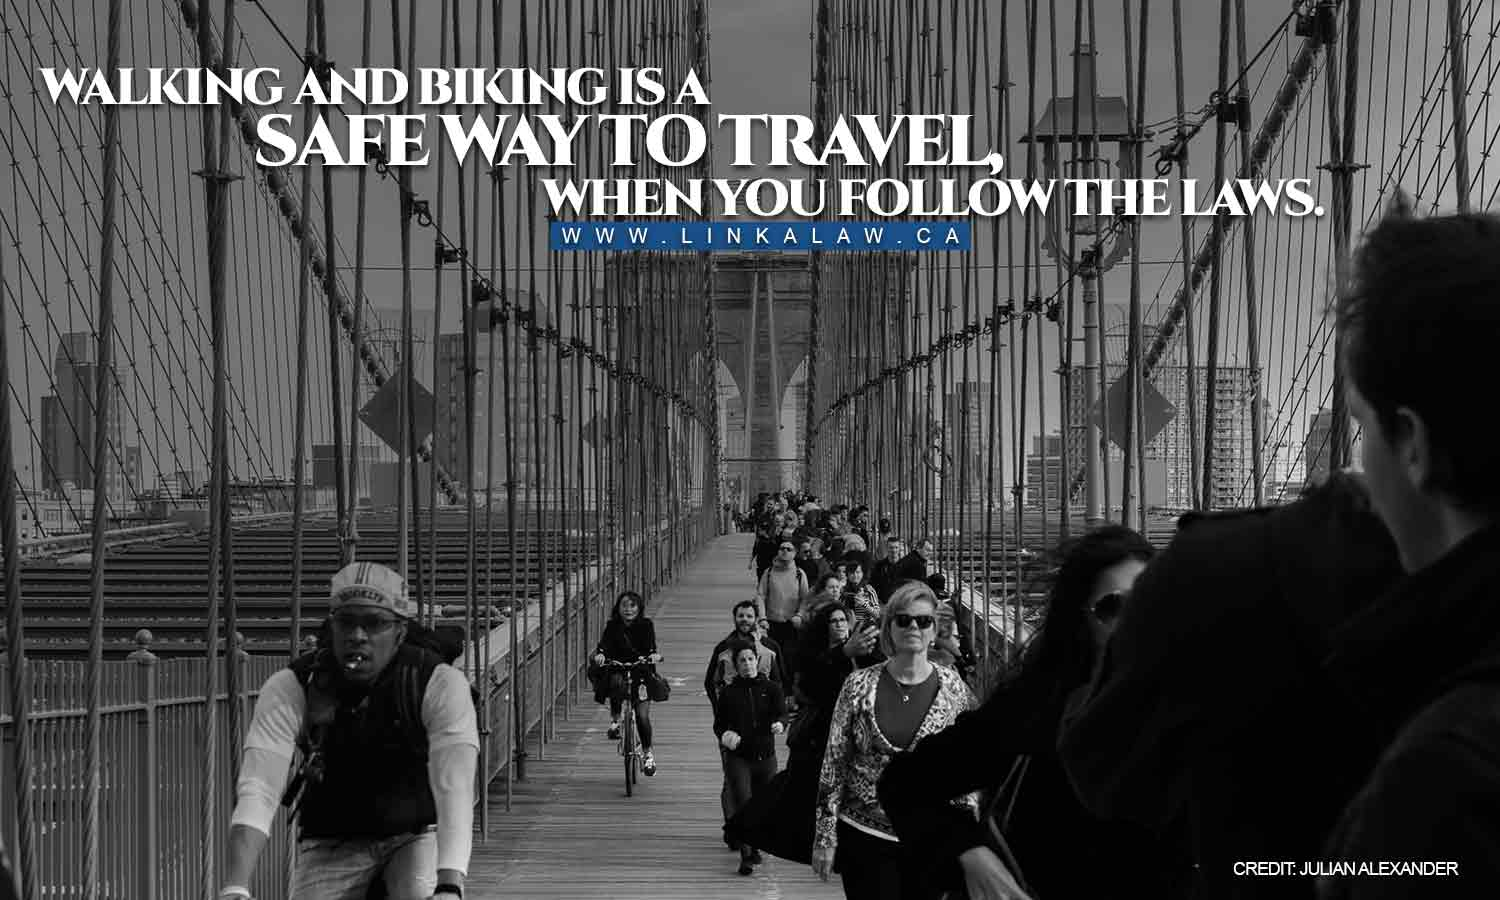 Walking and biking is a safe way to travel, when you follow the laws.